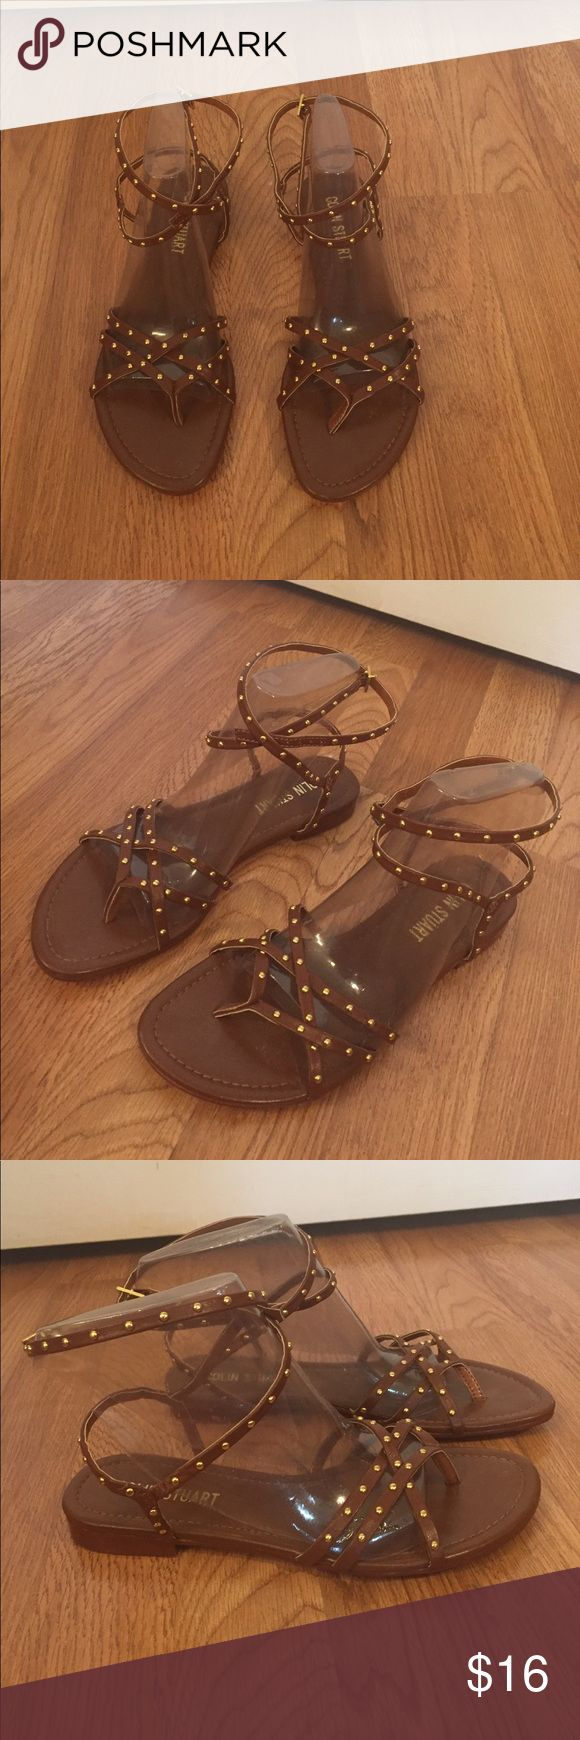 💥💥SALE!! - Colin Stuart Sandals Brown sandals with gold accents and gladiator straps. Comfortable with only a half inch heel. Great condition! Only worn a couple of times. Colin Stuart Shoes Sandals